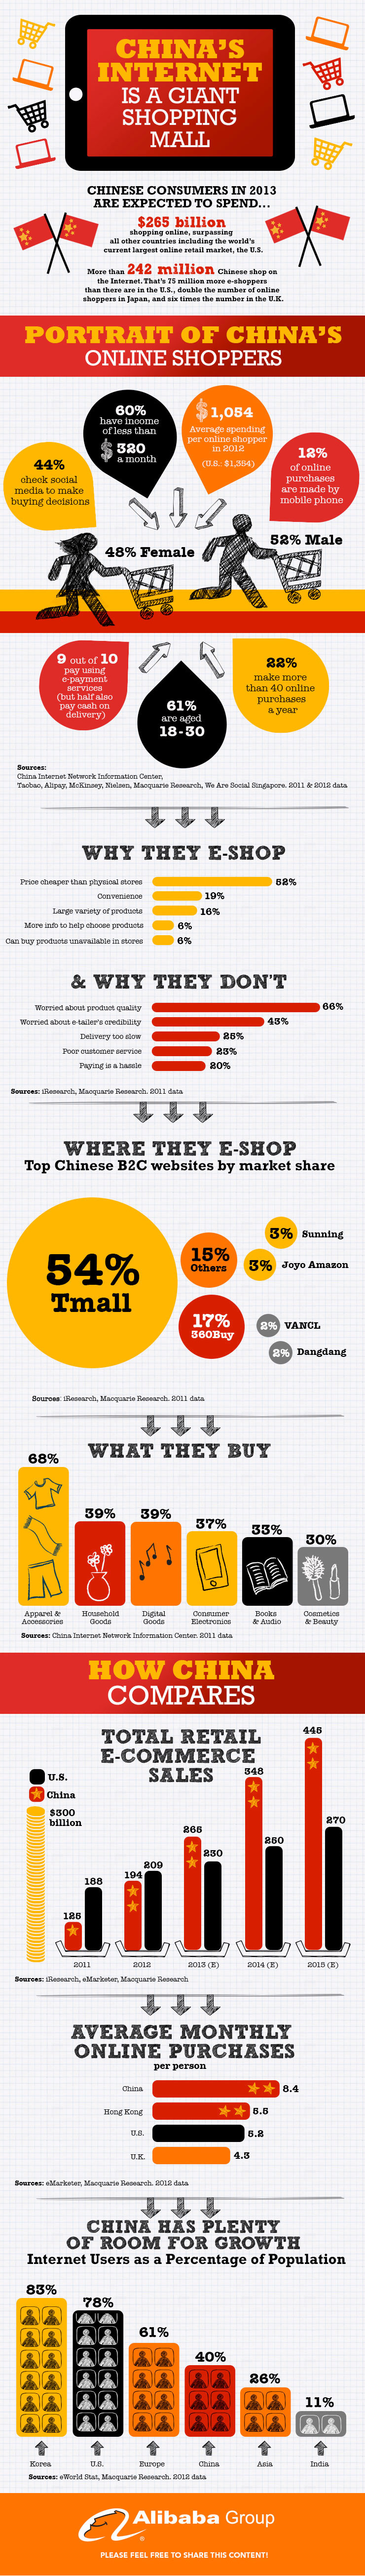 china_online_shopping-infographic